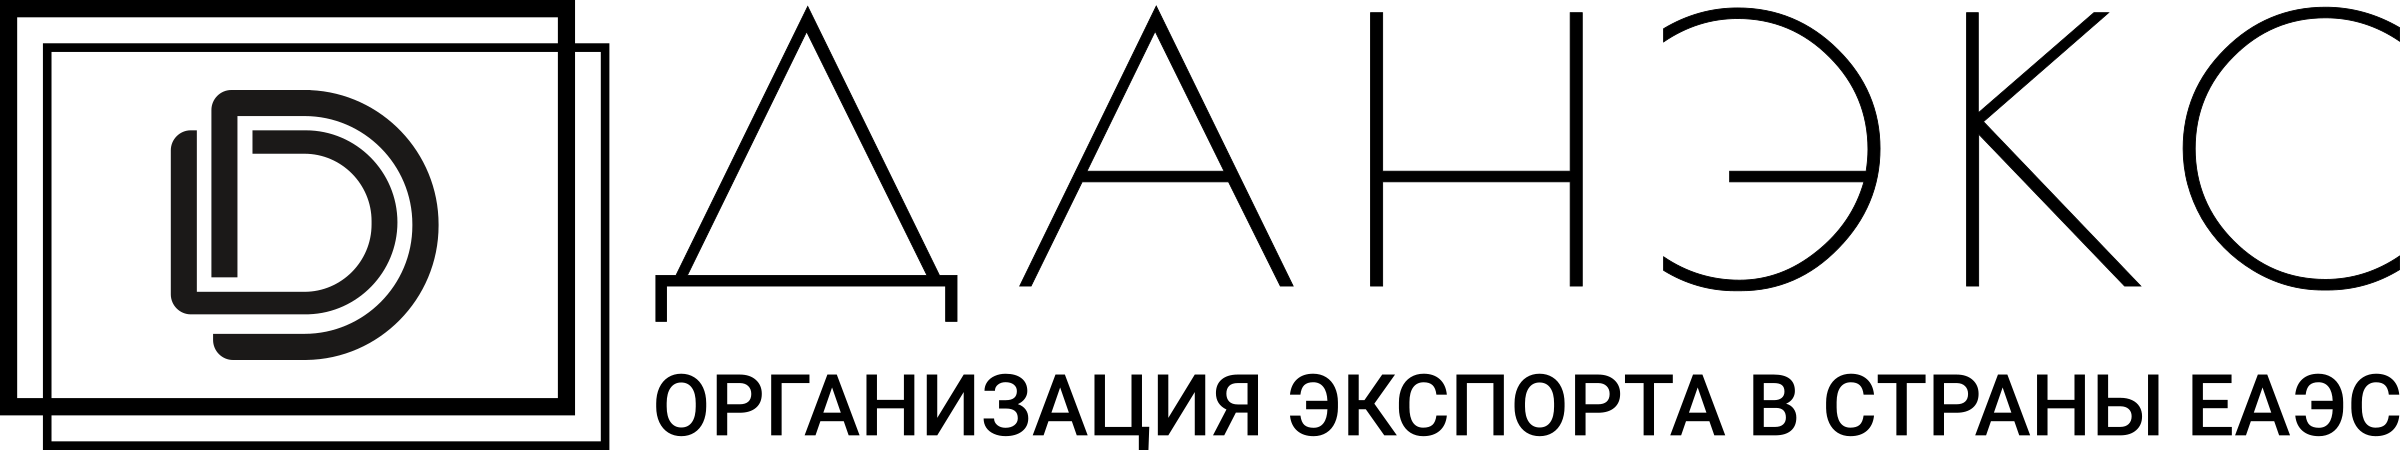 cropped-logo_mid_2400.png